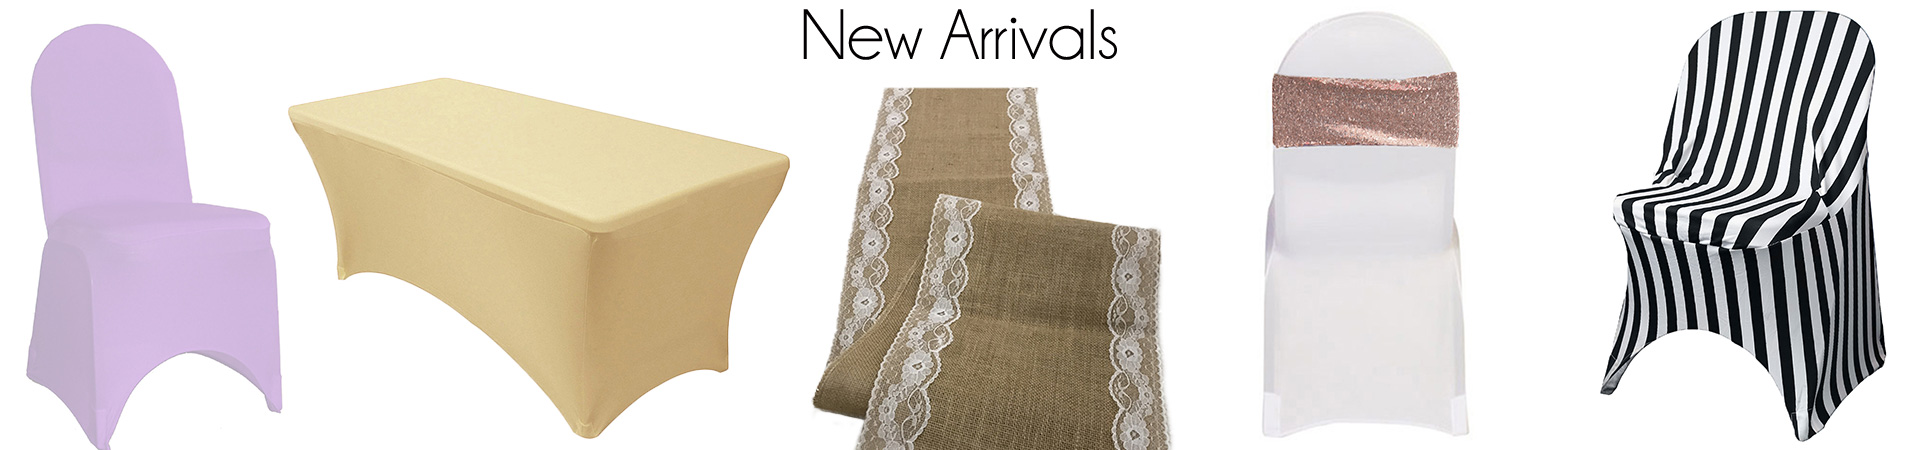 new arrivals linens and chair covers